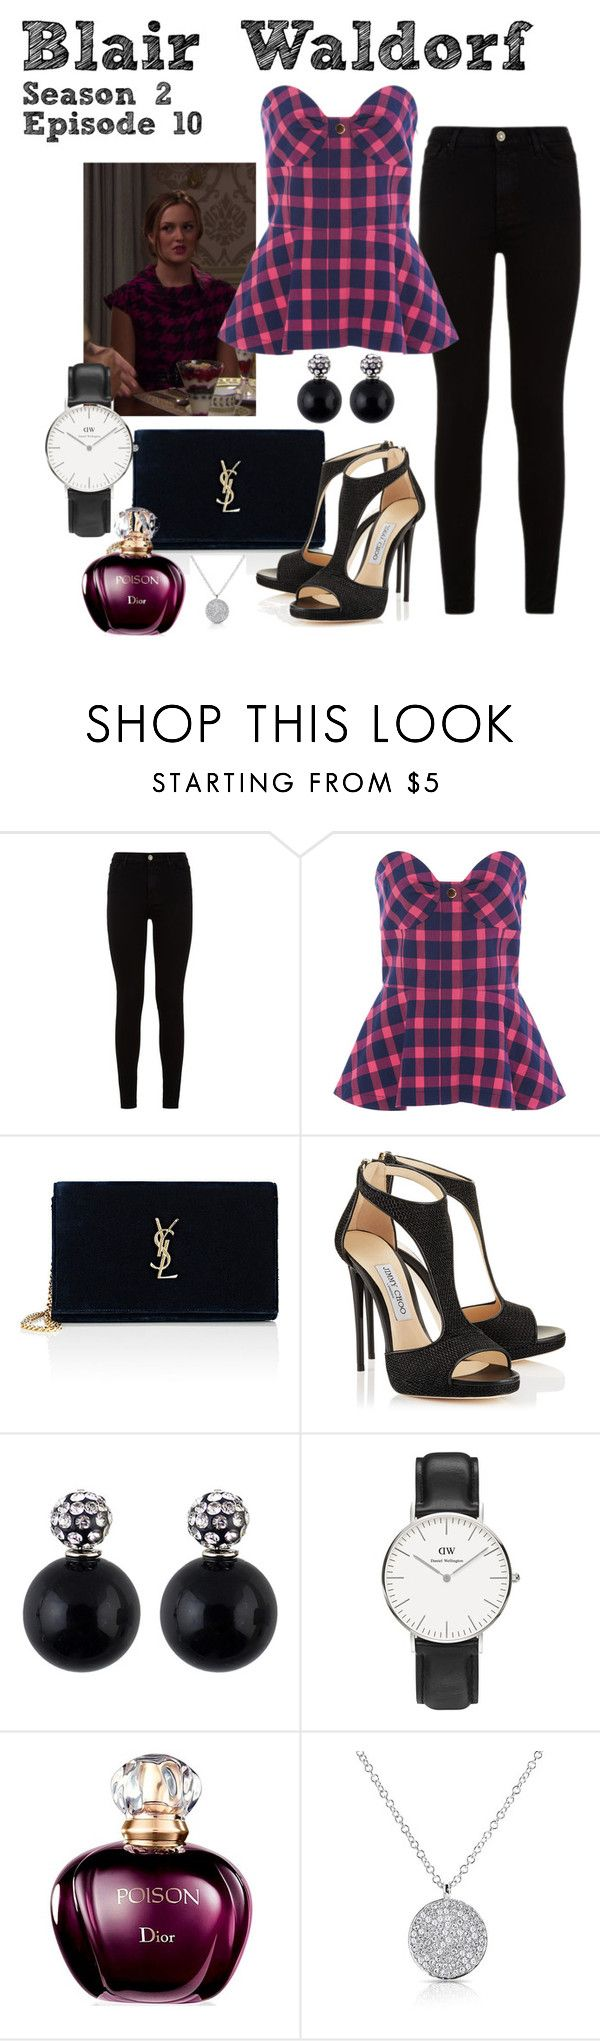 """Gossip Girl - Blair Waldorf - Season 2 Episode 10 - Houndstooth"" by deathcab4kuz on Polyvore featuring 7 For All Mankind, Tanya Taylor, Yves Saint Laurent and Daniel Wellington"